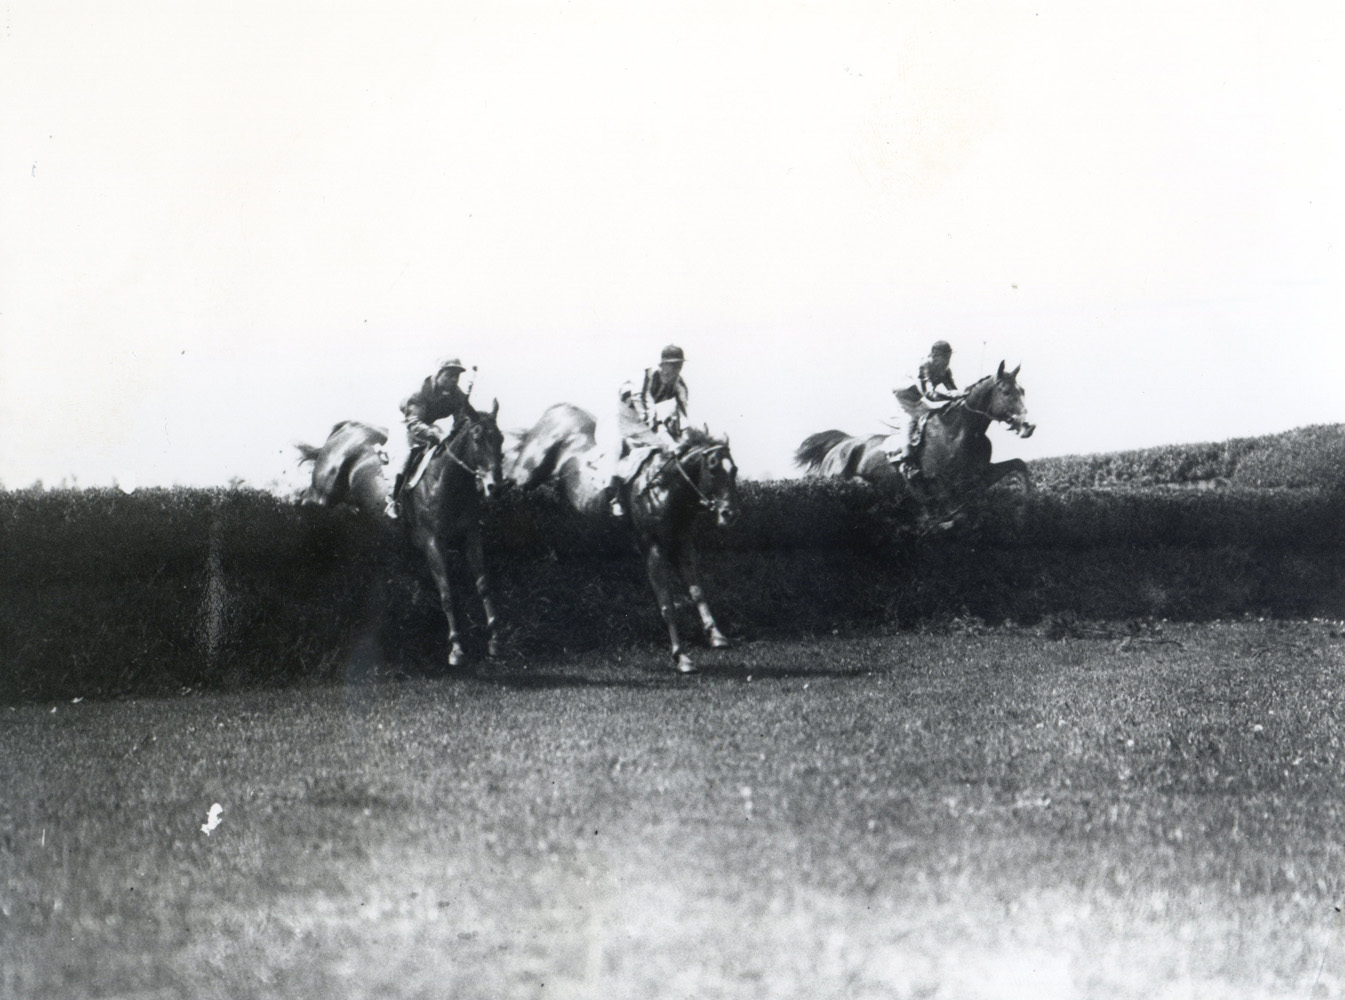 Jolly Roger (far right) taking a jump in the 1928 Charles Appleton Memorial Cup Steeplechase at Belmont Park (Keeneland Library Cook Collection/Museum Collection)